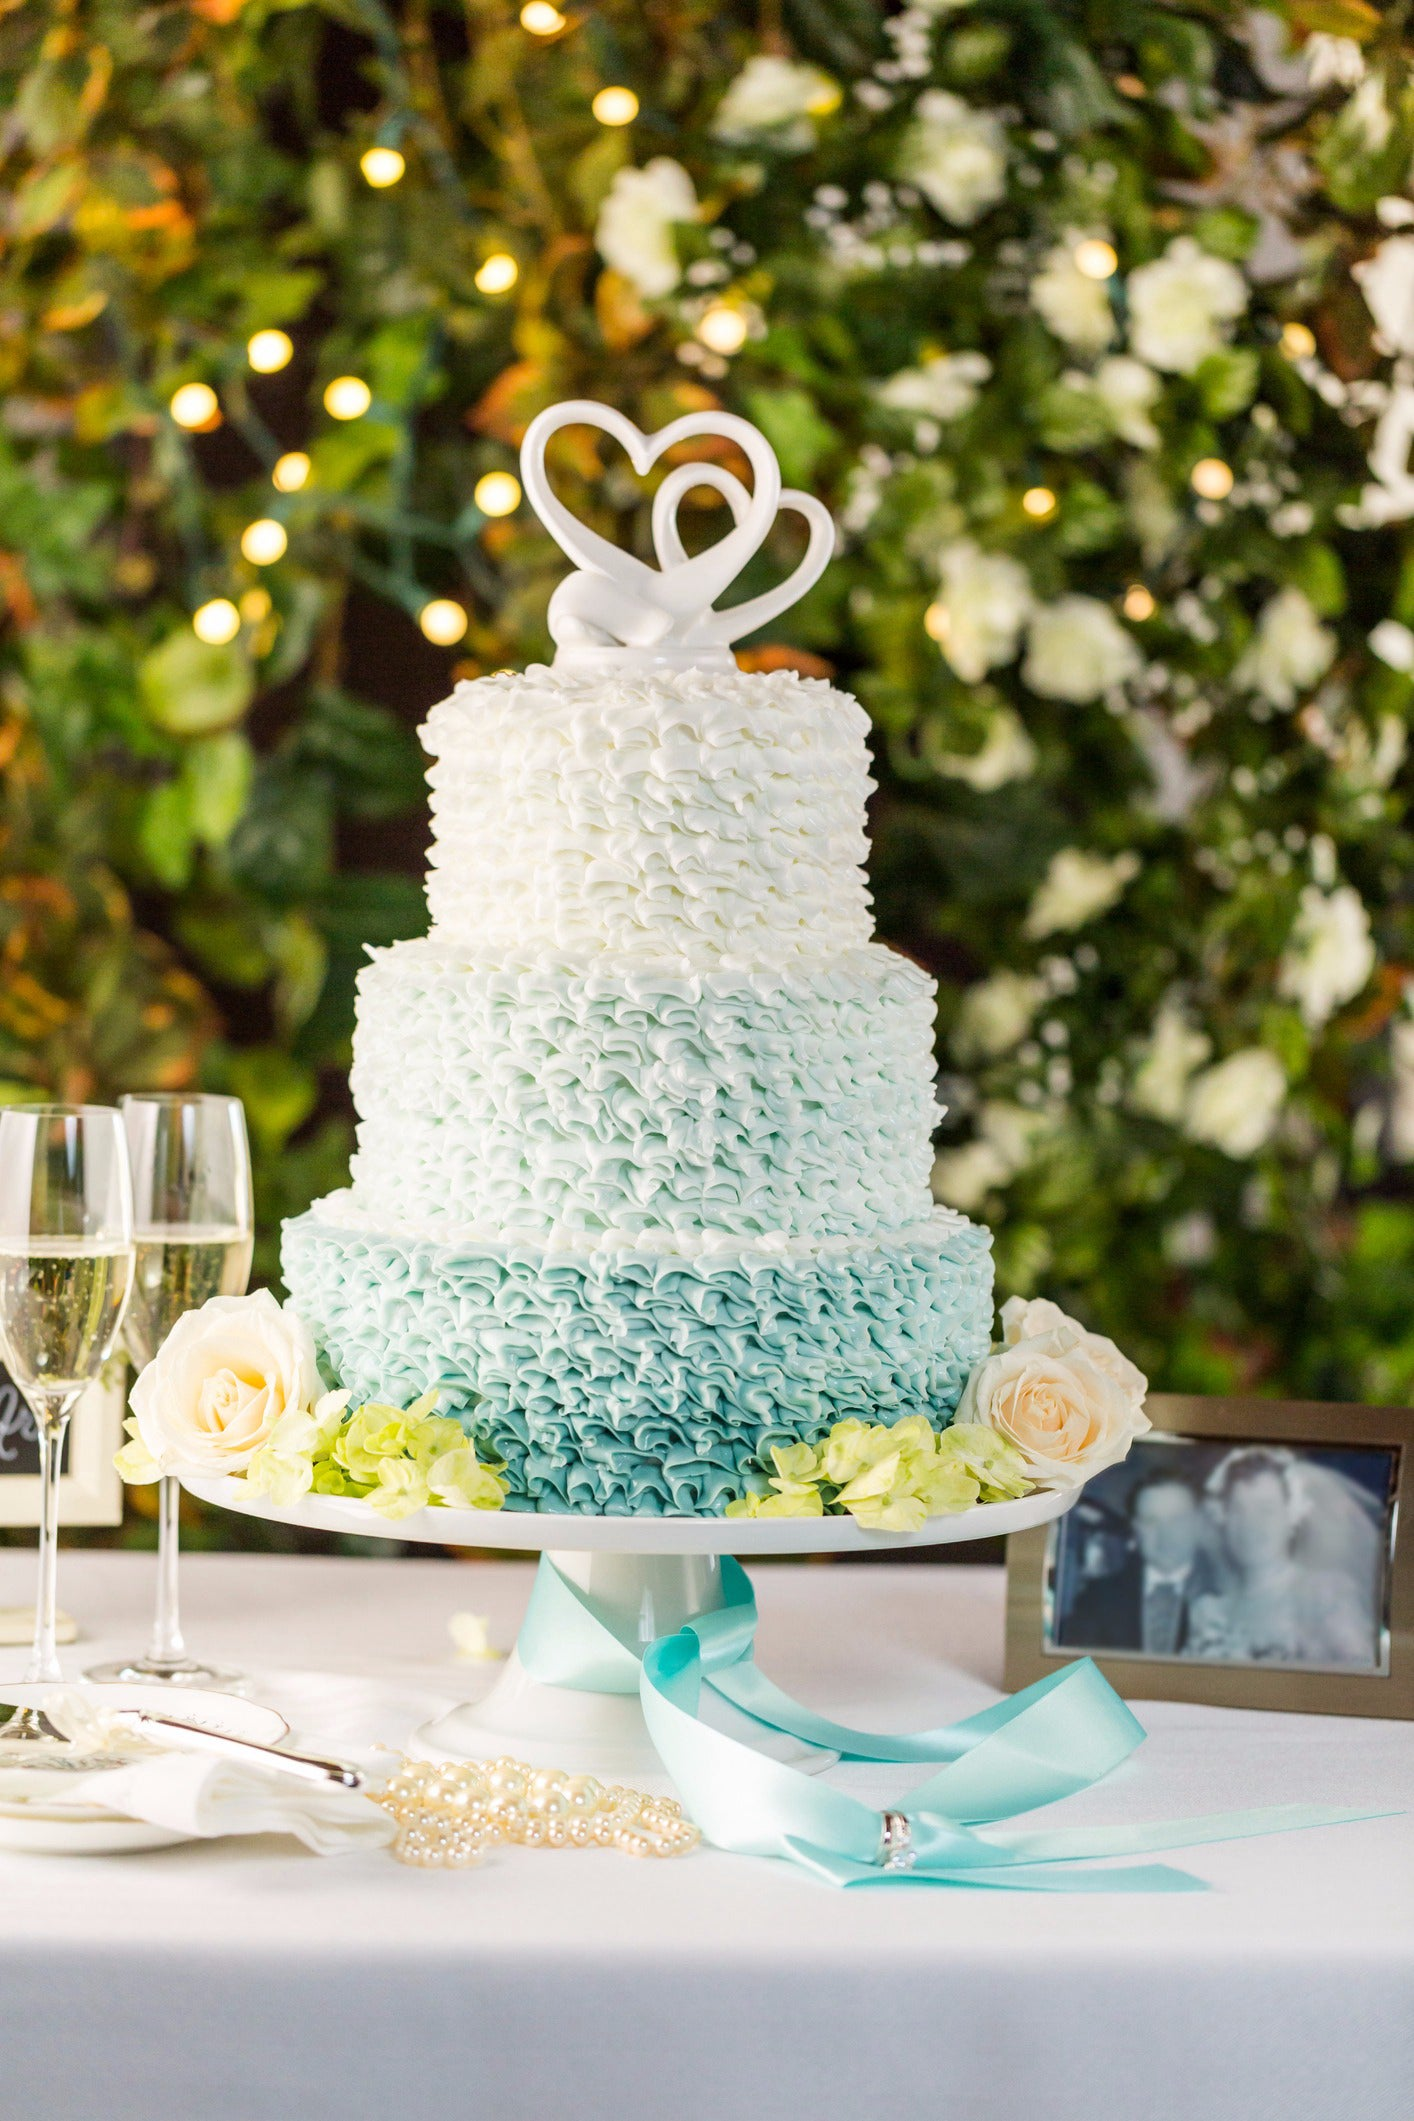 Rate These Wedding Cakes And We ll Reveal What Kind Wedding You